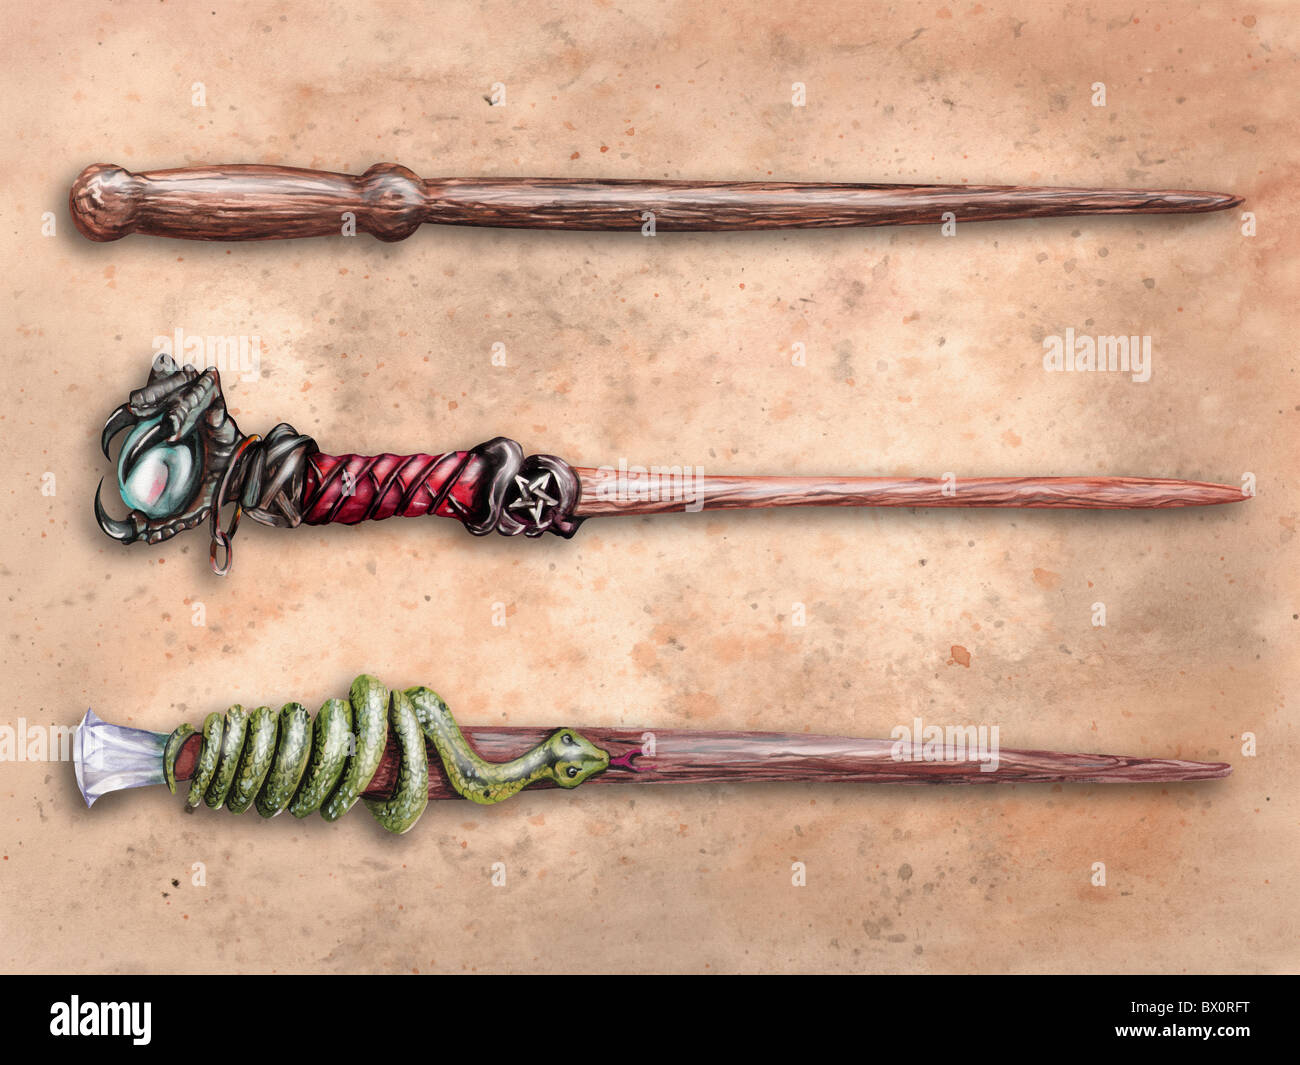 Three magical wizard wands on old parchment - Stock Image